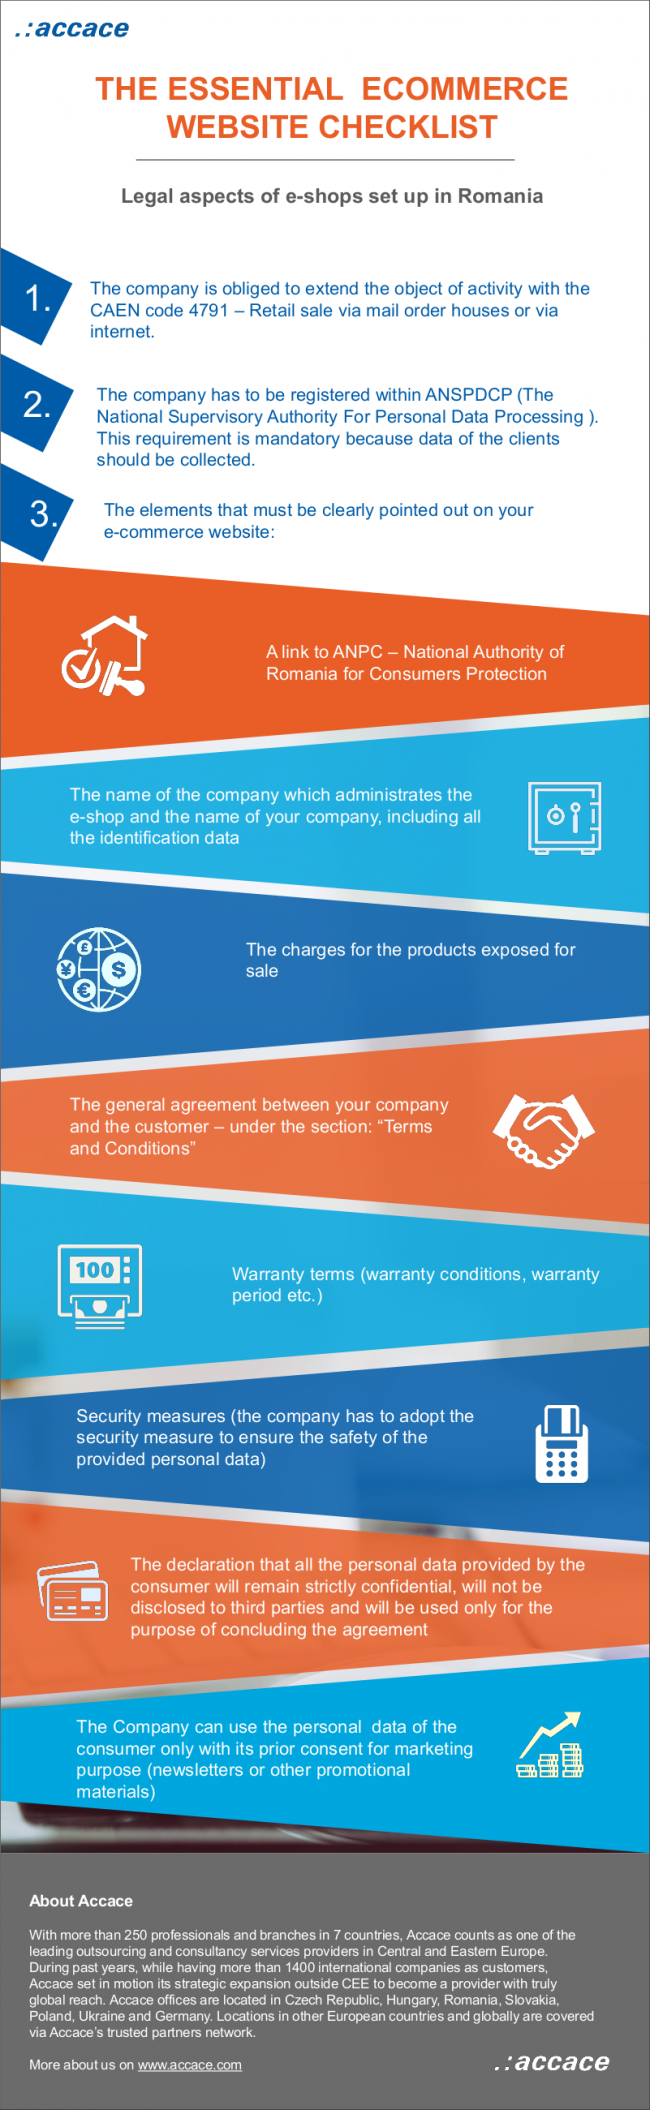 RO-2015-06-16-The-essential-ecommerce-website-checklist-in-Romania-legal-aspects-Infografic-EN